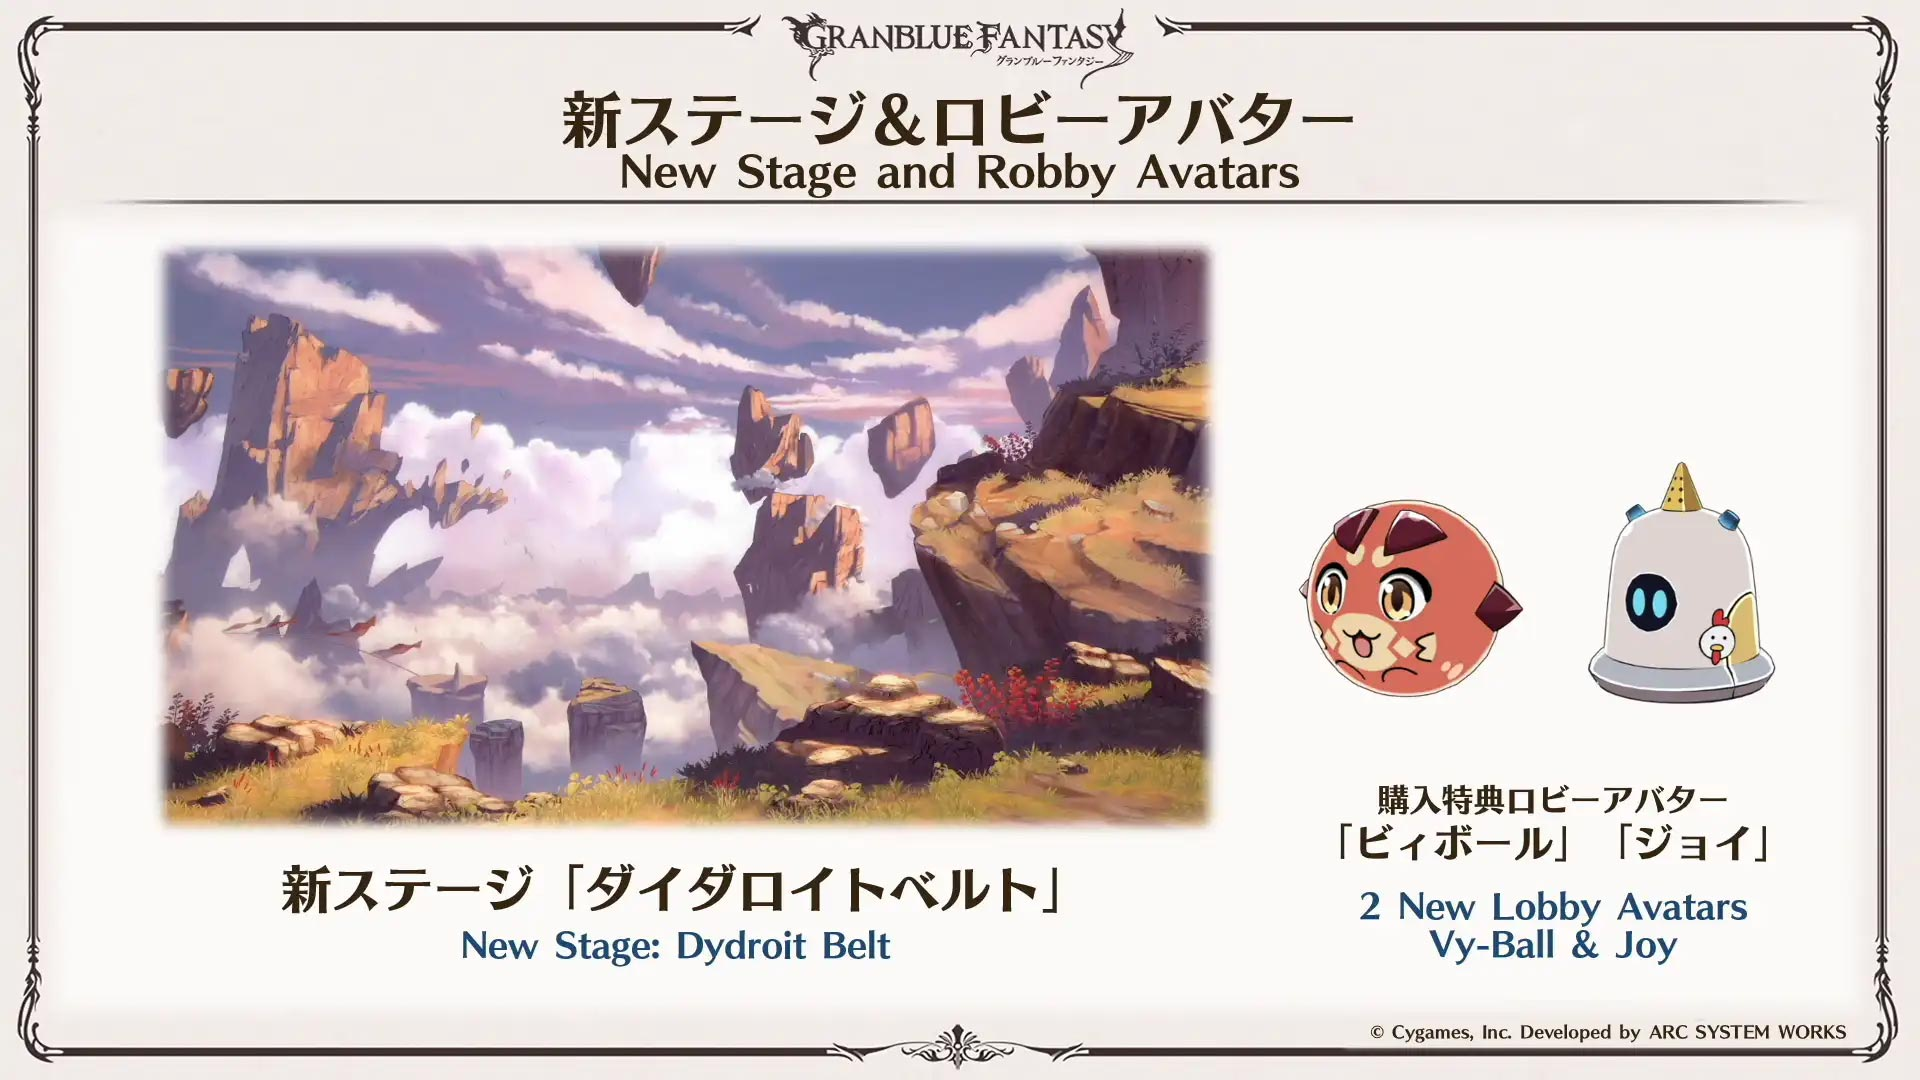 Granblue Fantasy Versus Eustace Reveal Trailer Gallery 8 out of 11 image gallery